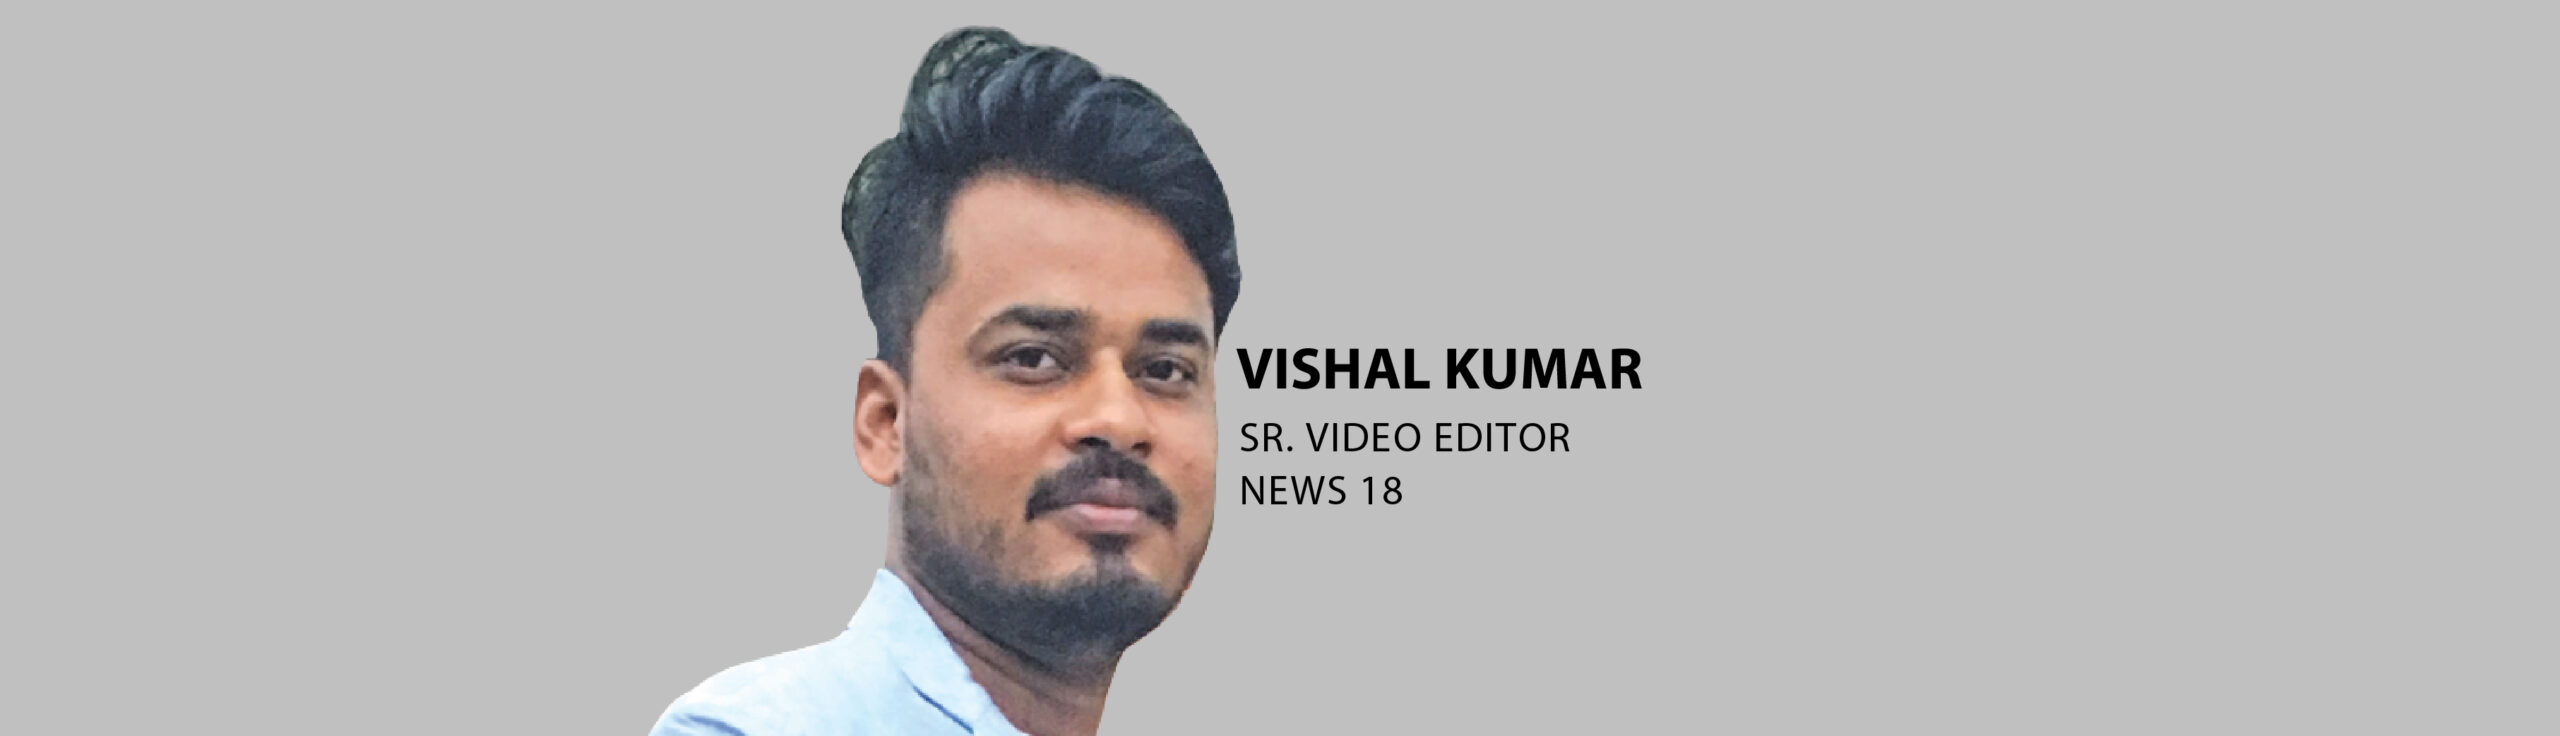 OTT, VOD transforming the future of India's entertainment sector